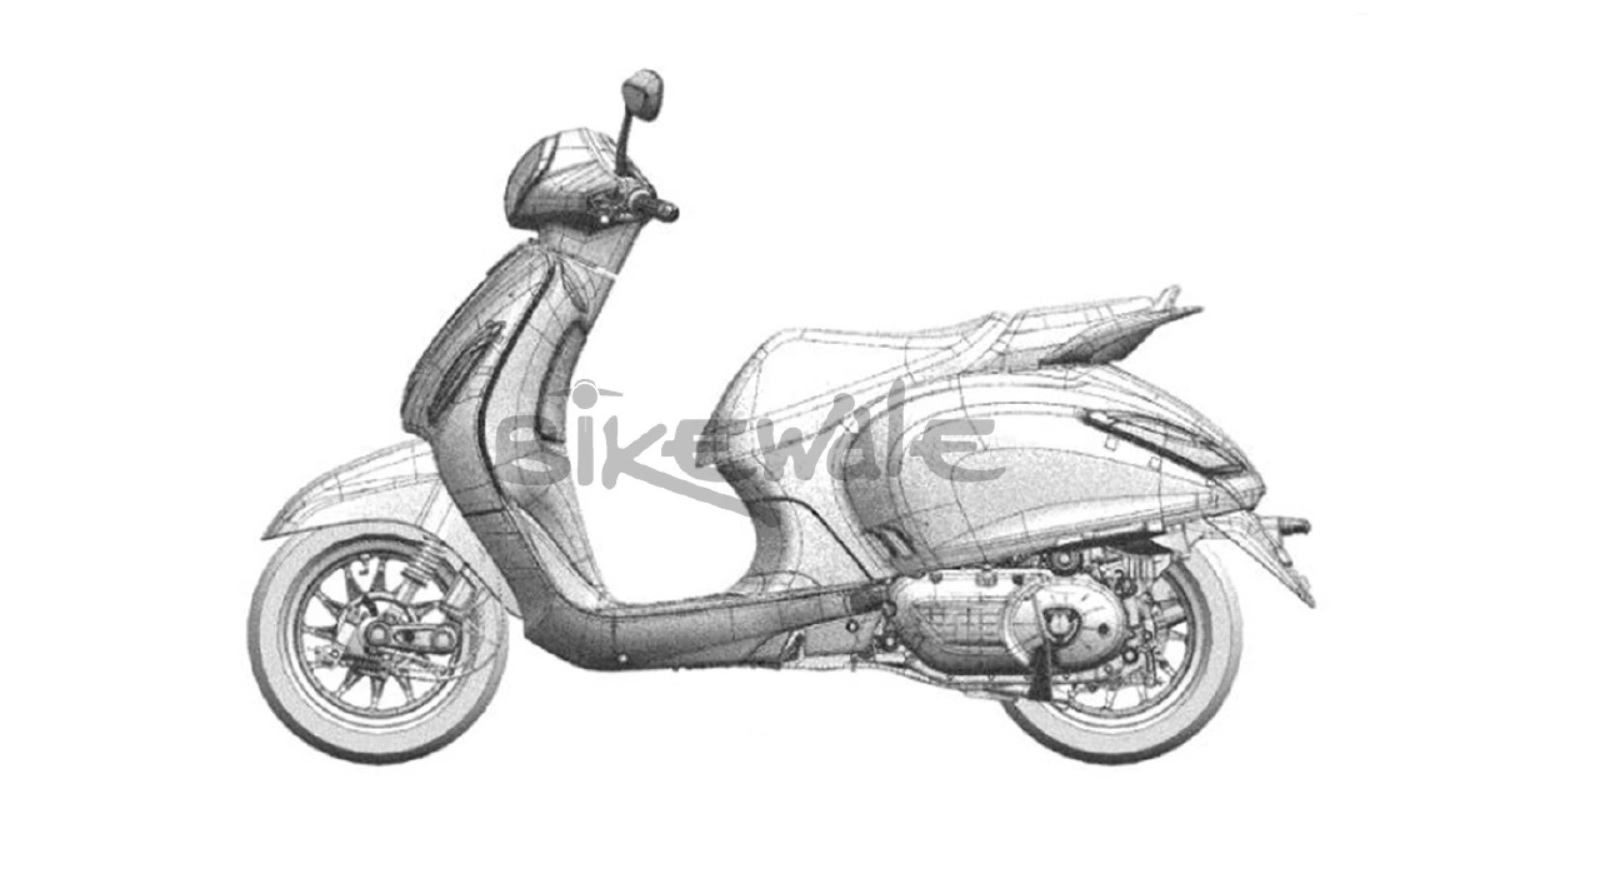 3644cfd664c Bajaj may revive Chetak brand for re-entry in the scooter segment – Report